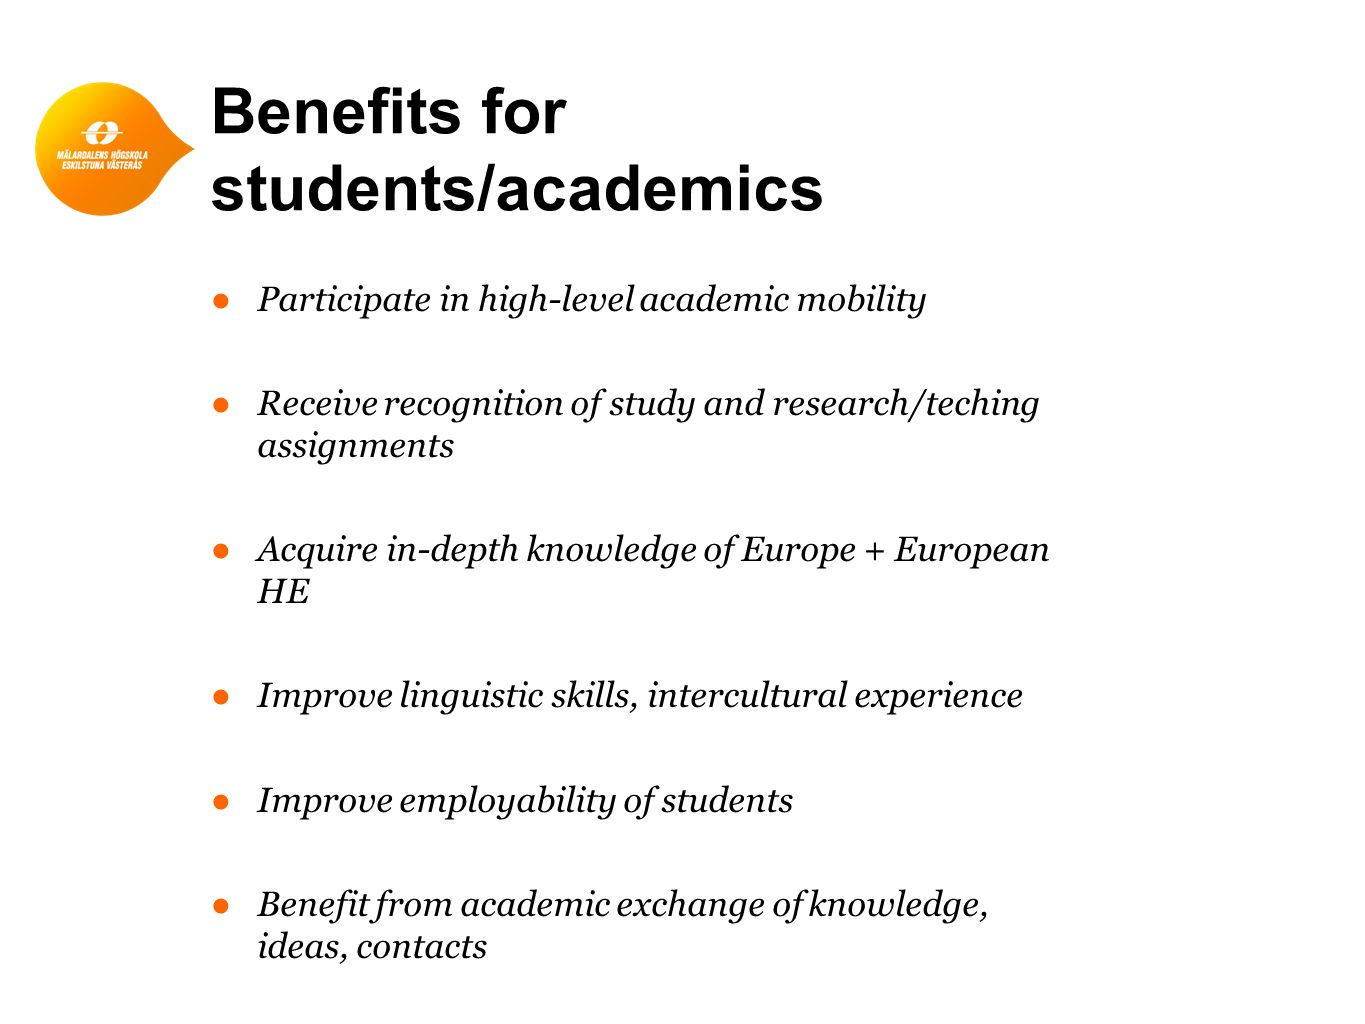 Benefits for students/academics ●Participate in high-level academic mobility ●Receive recognition of study and research/teching assignments ●Acquire in-depth knowledge of Europe + European HE ●Improve linguistic skills, intercultural experience ●Improve employability of students ●Benefit from academic exchange of knowledge, ideas, contacts